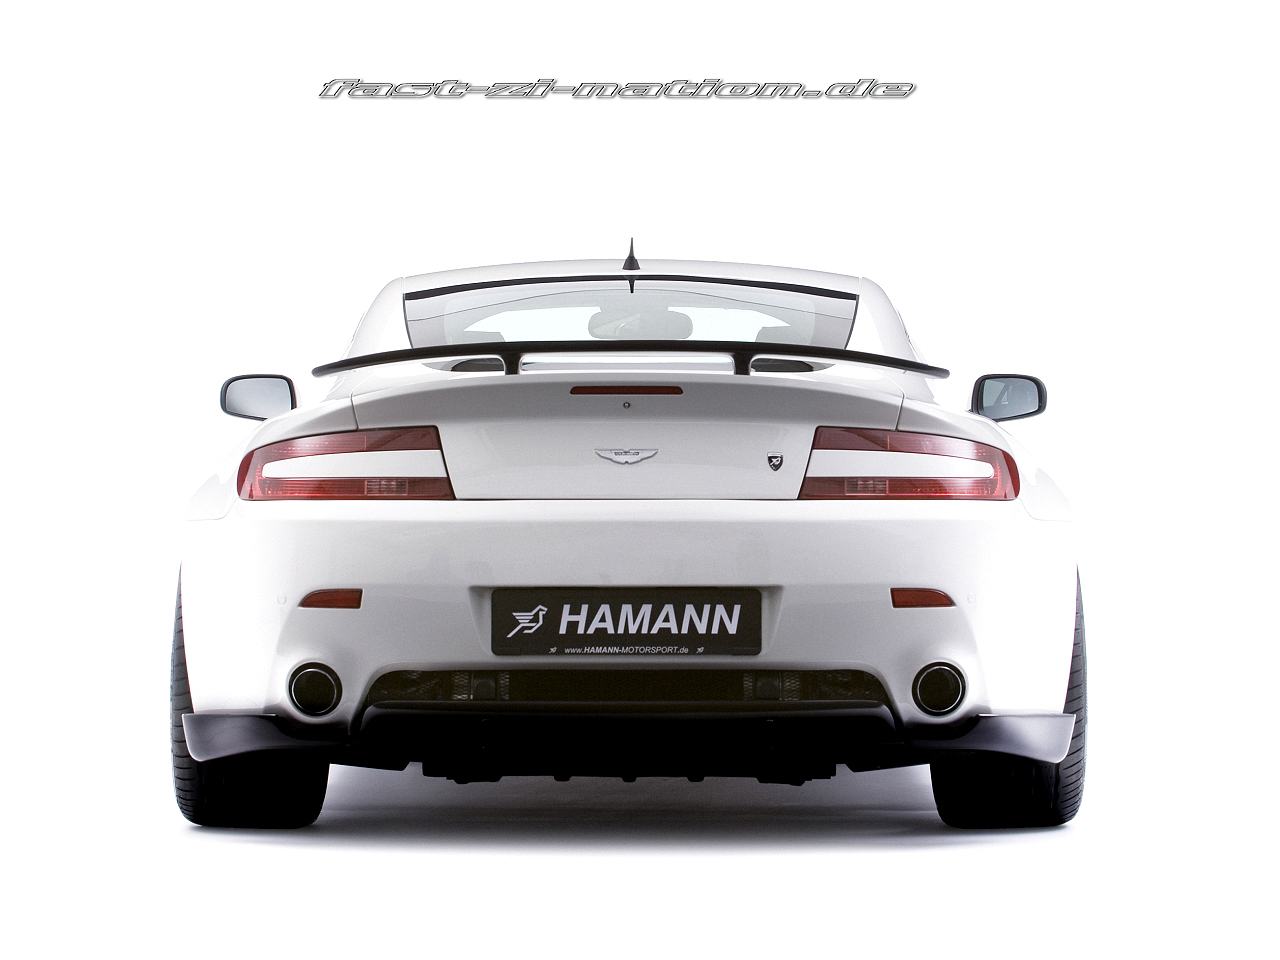 wallpaper 1280x960: Aston Martin V8 Vantage by Hamann Motorsport